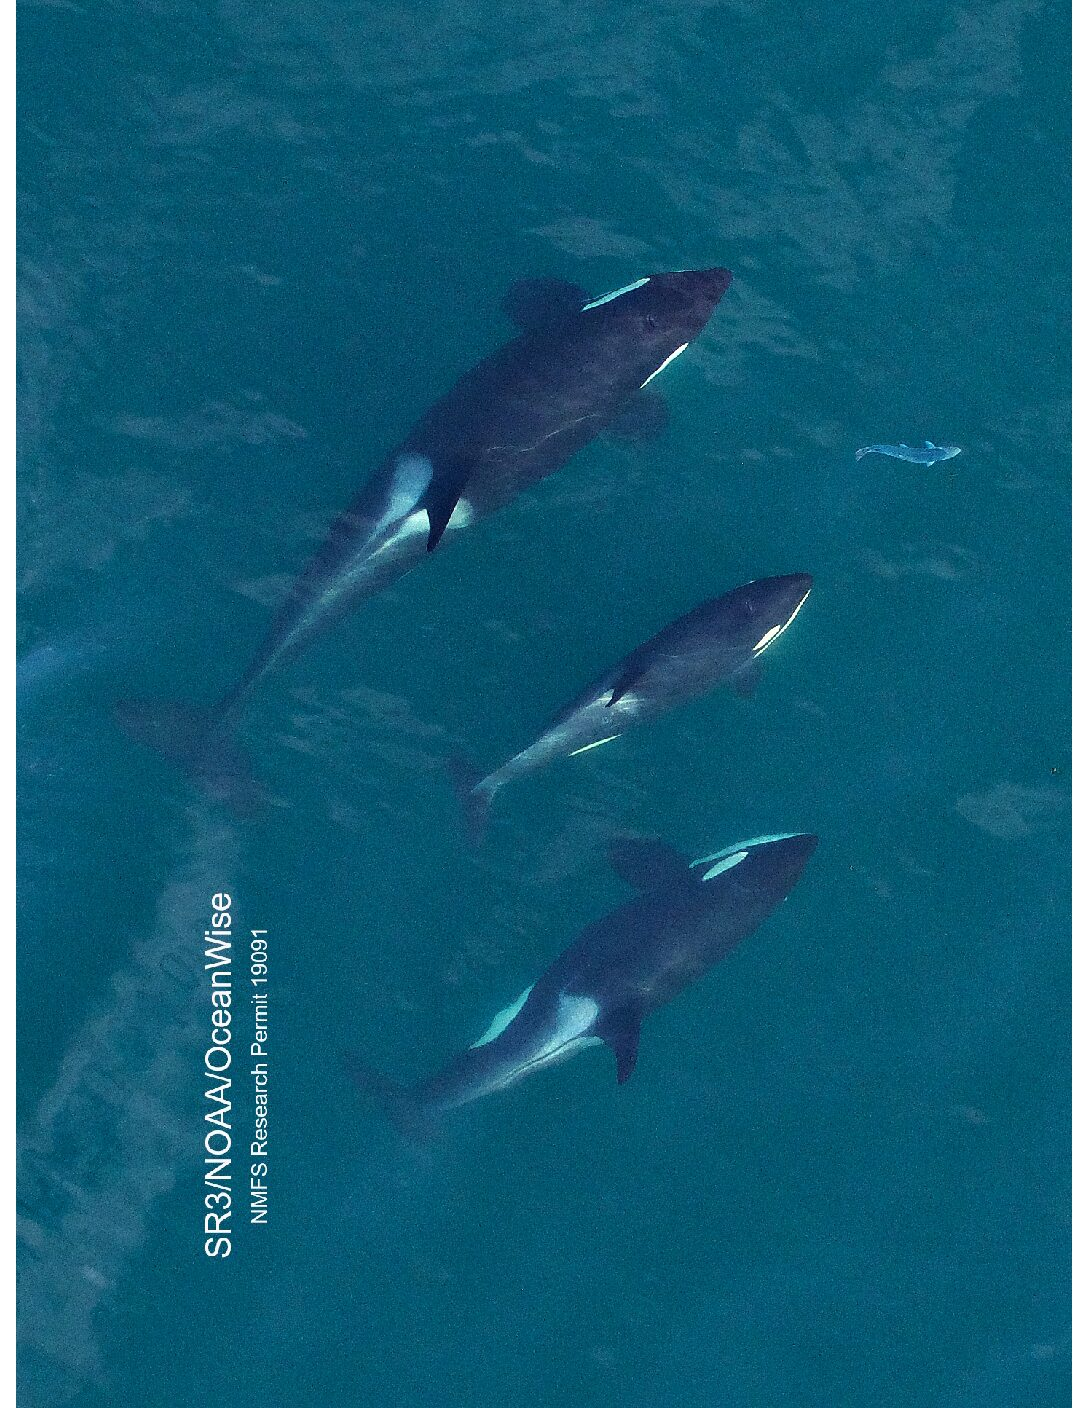 Killer Whales: Survival of the FATTEST